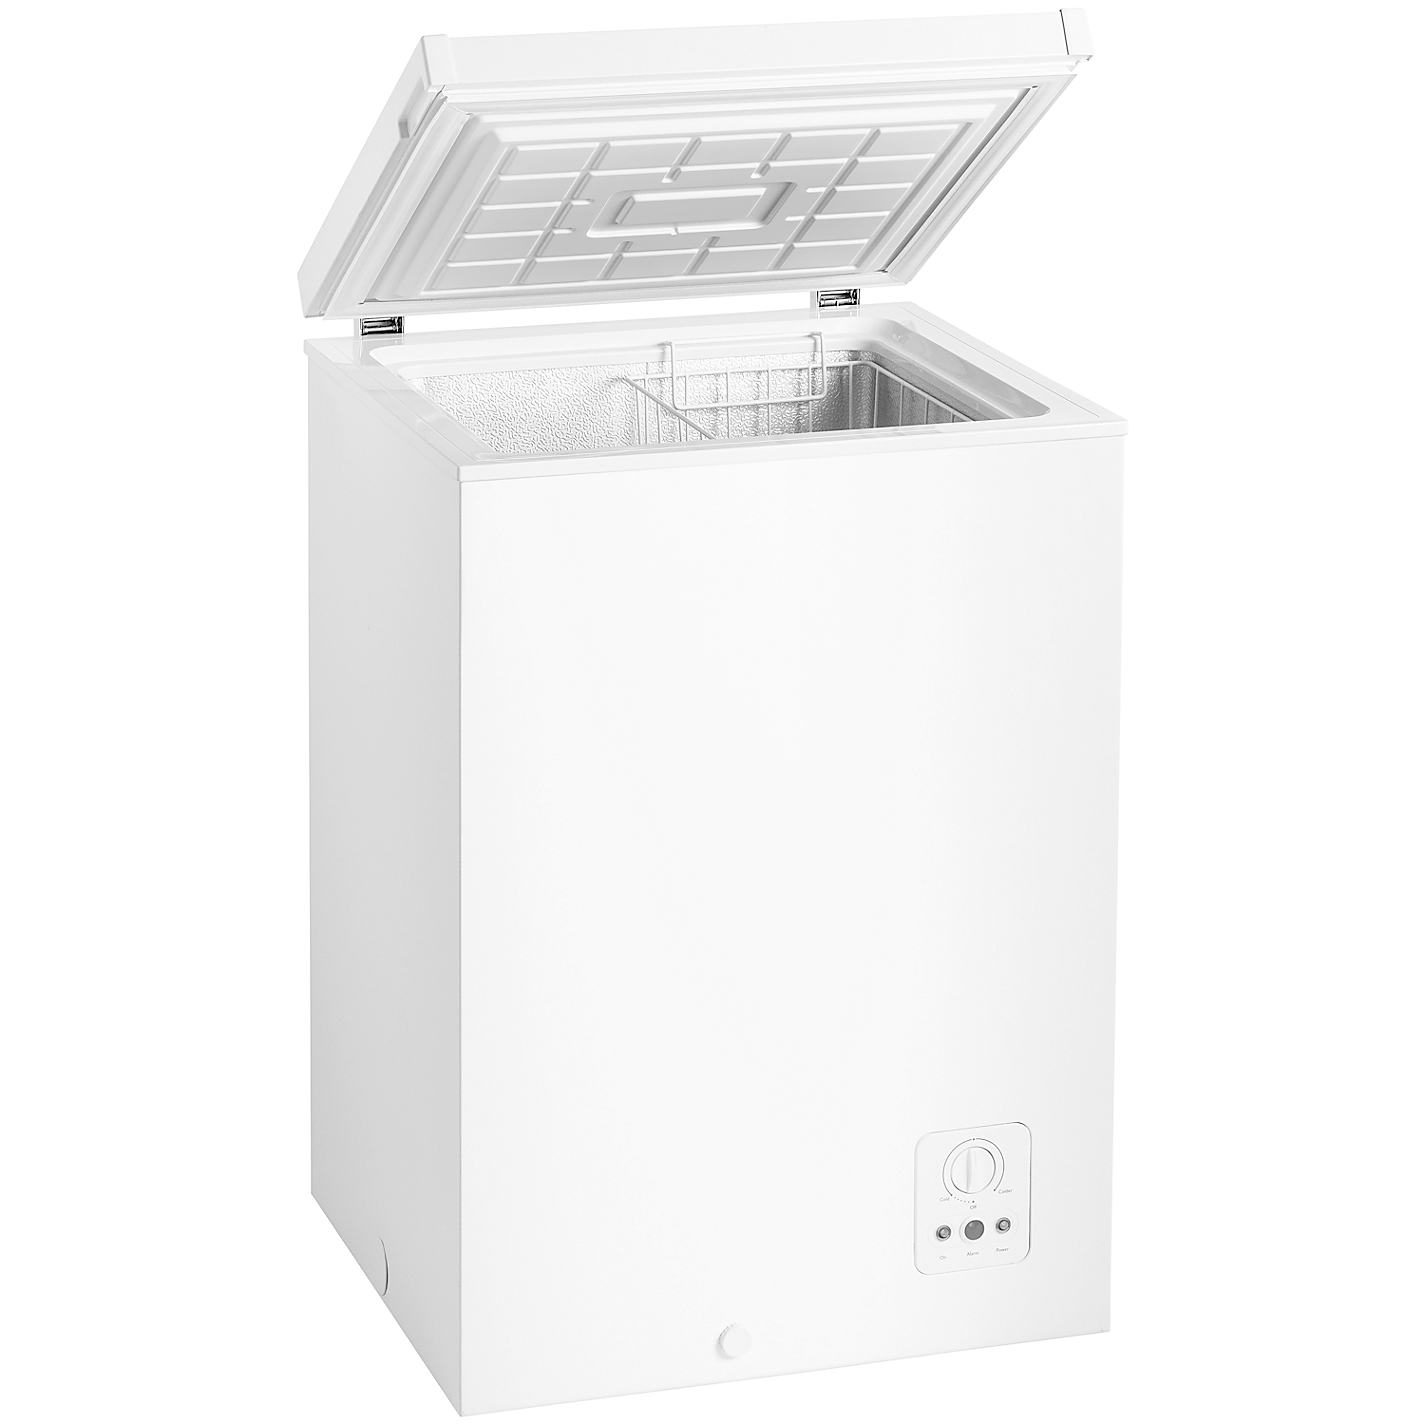 john lewis jlch102 chest freezer white